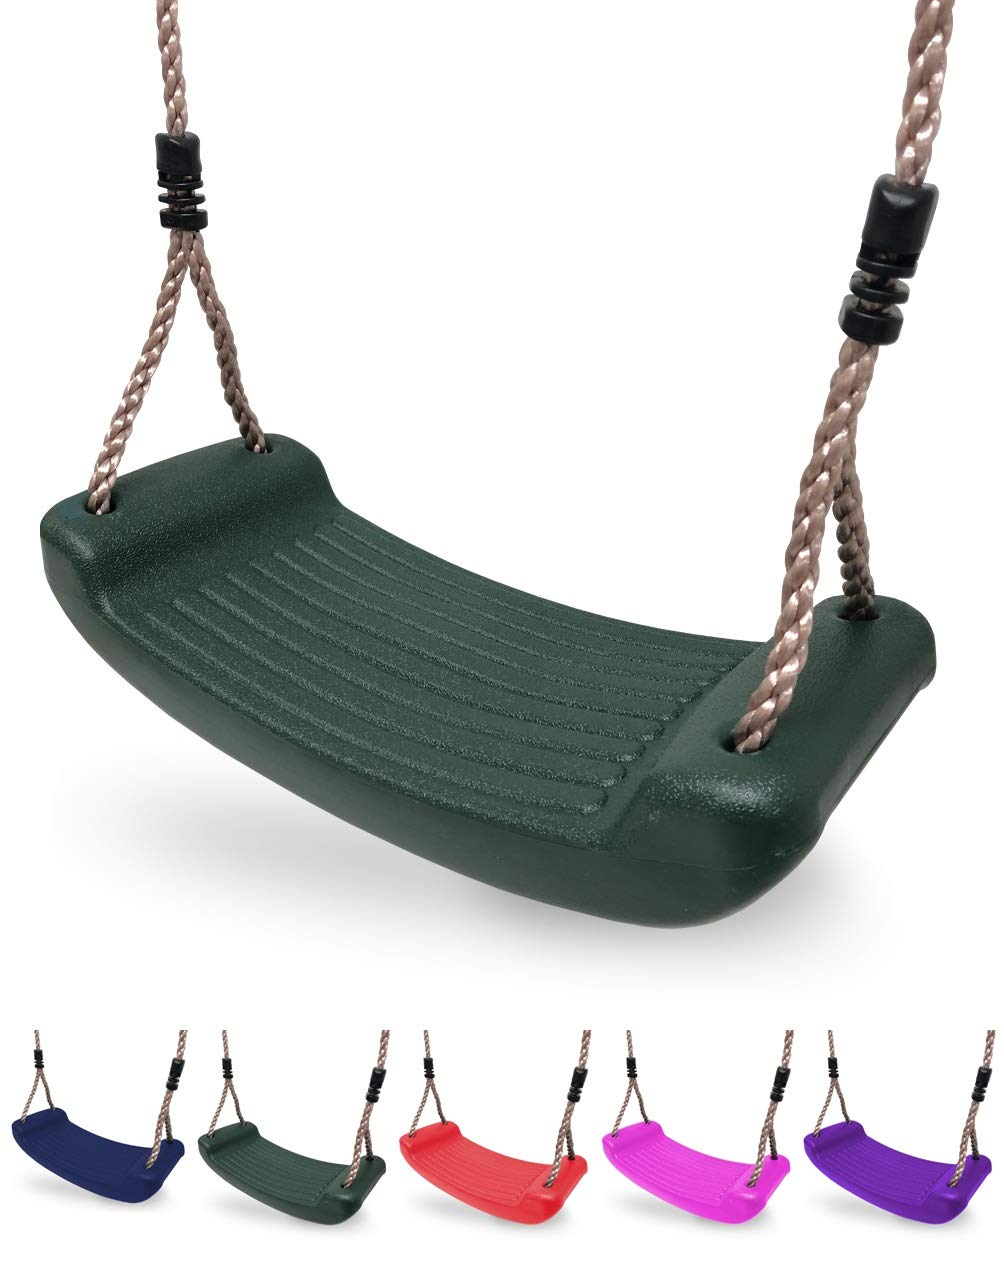 Pair of HIKS Swing Hook Eyes M12 Ideal For Mounting Swings on Climbing Frame or Swing A Frames